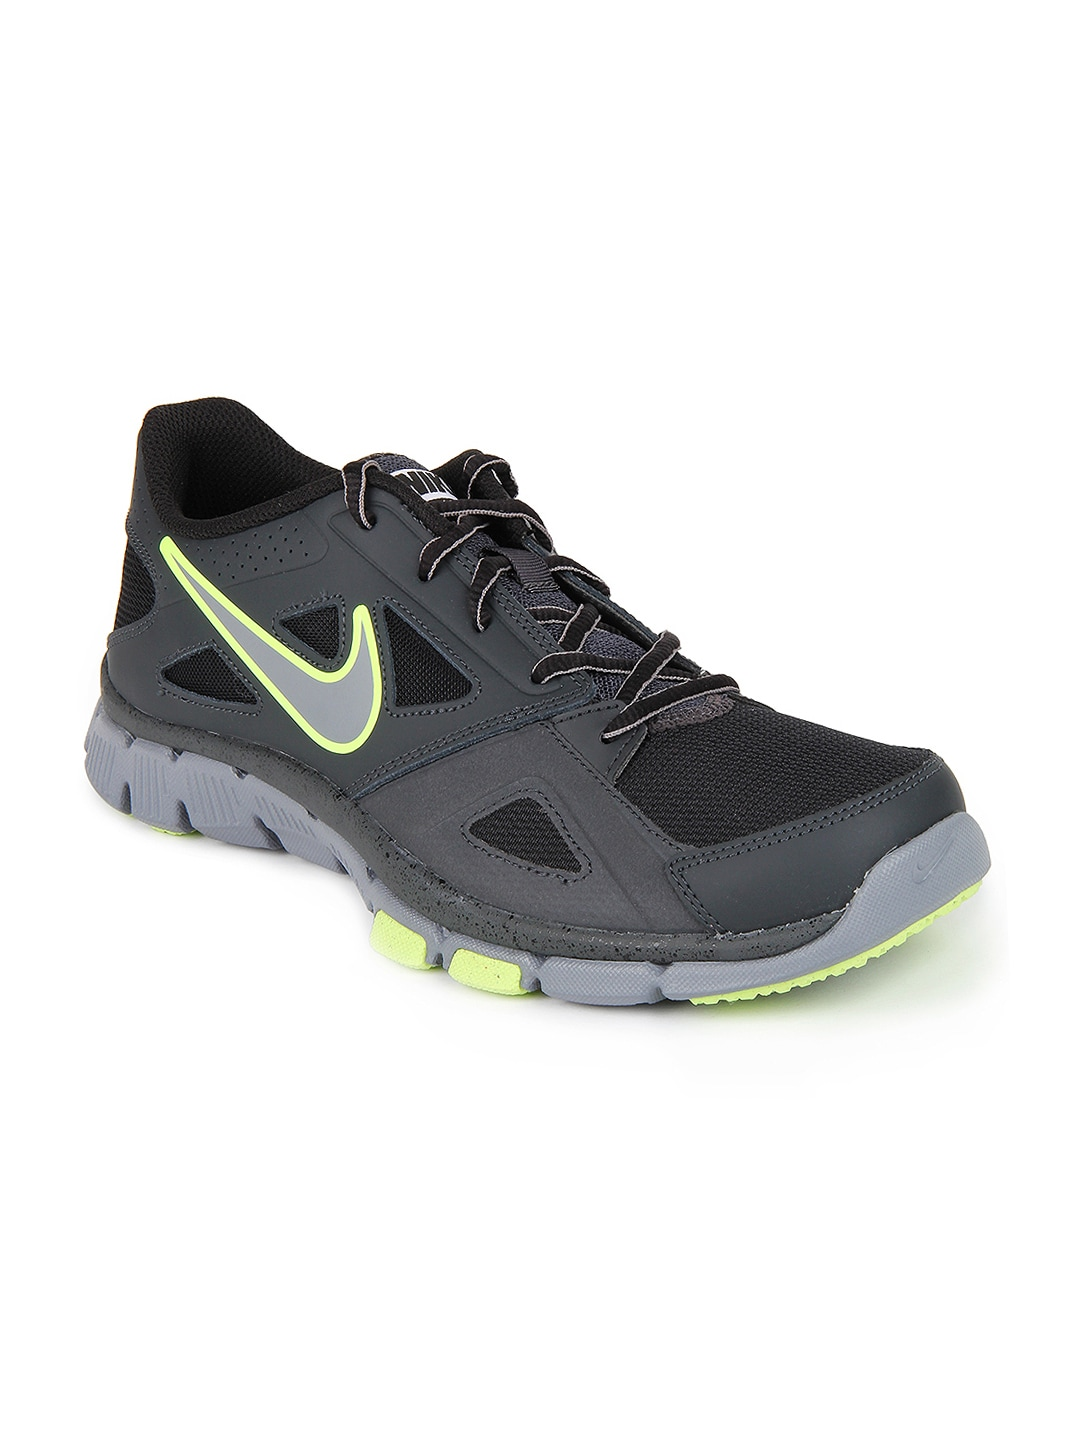 1ce440861f94 Nike 599558-017 Men Grey And Black Flex Supreme Tr 2 Sports Shoes- Price in  India